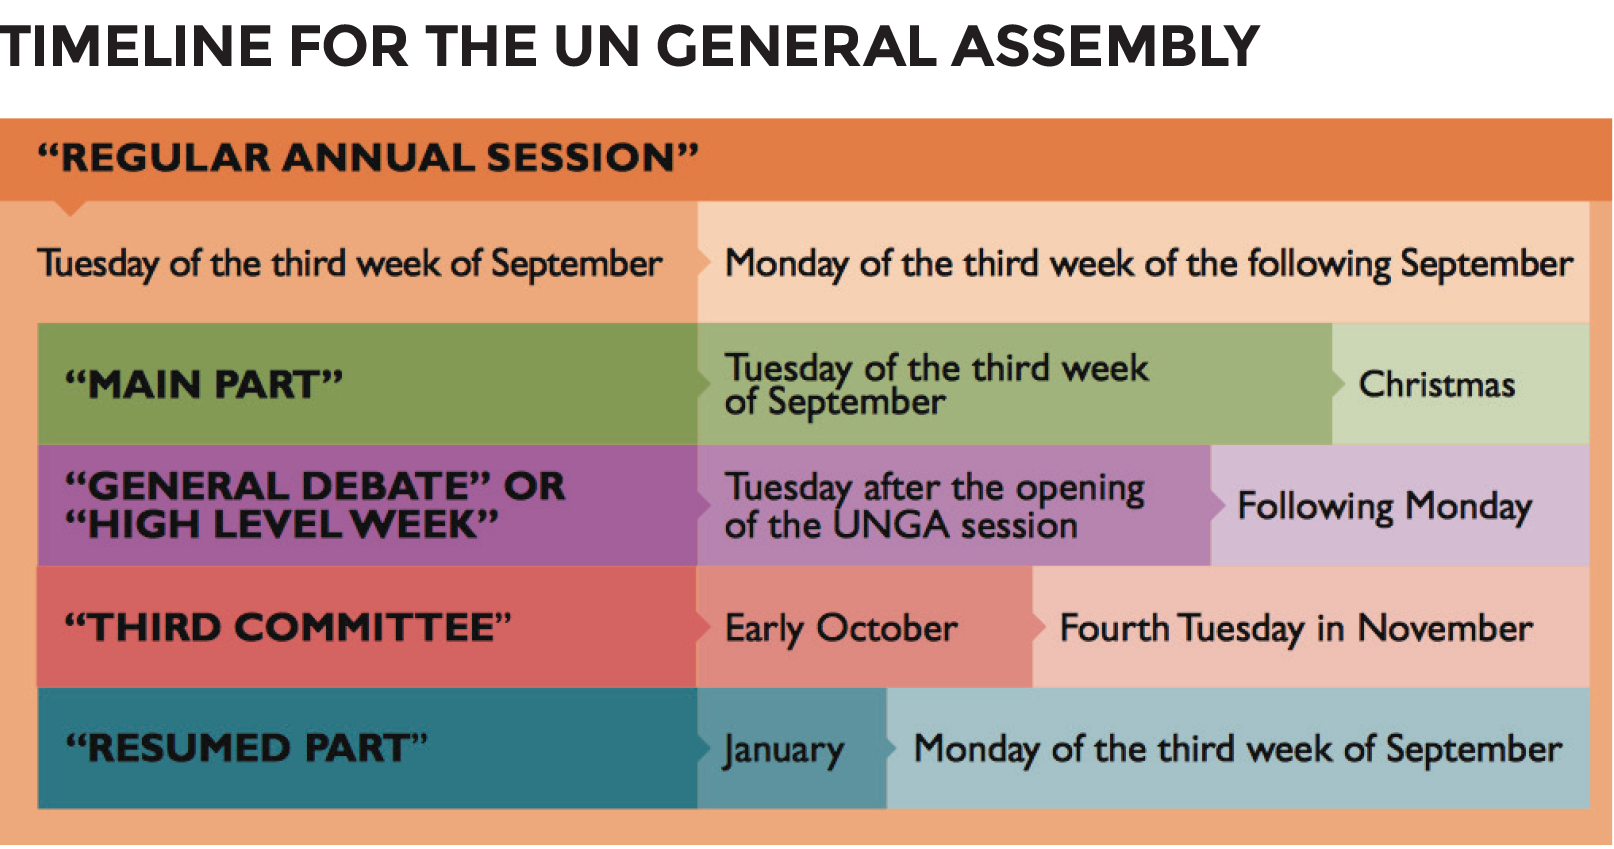 Everything You need To Know About LGBTI Advocacy At The 2018 UNGA - timeline